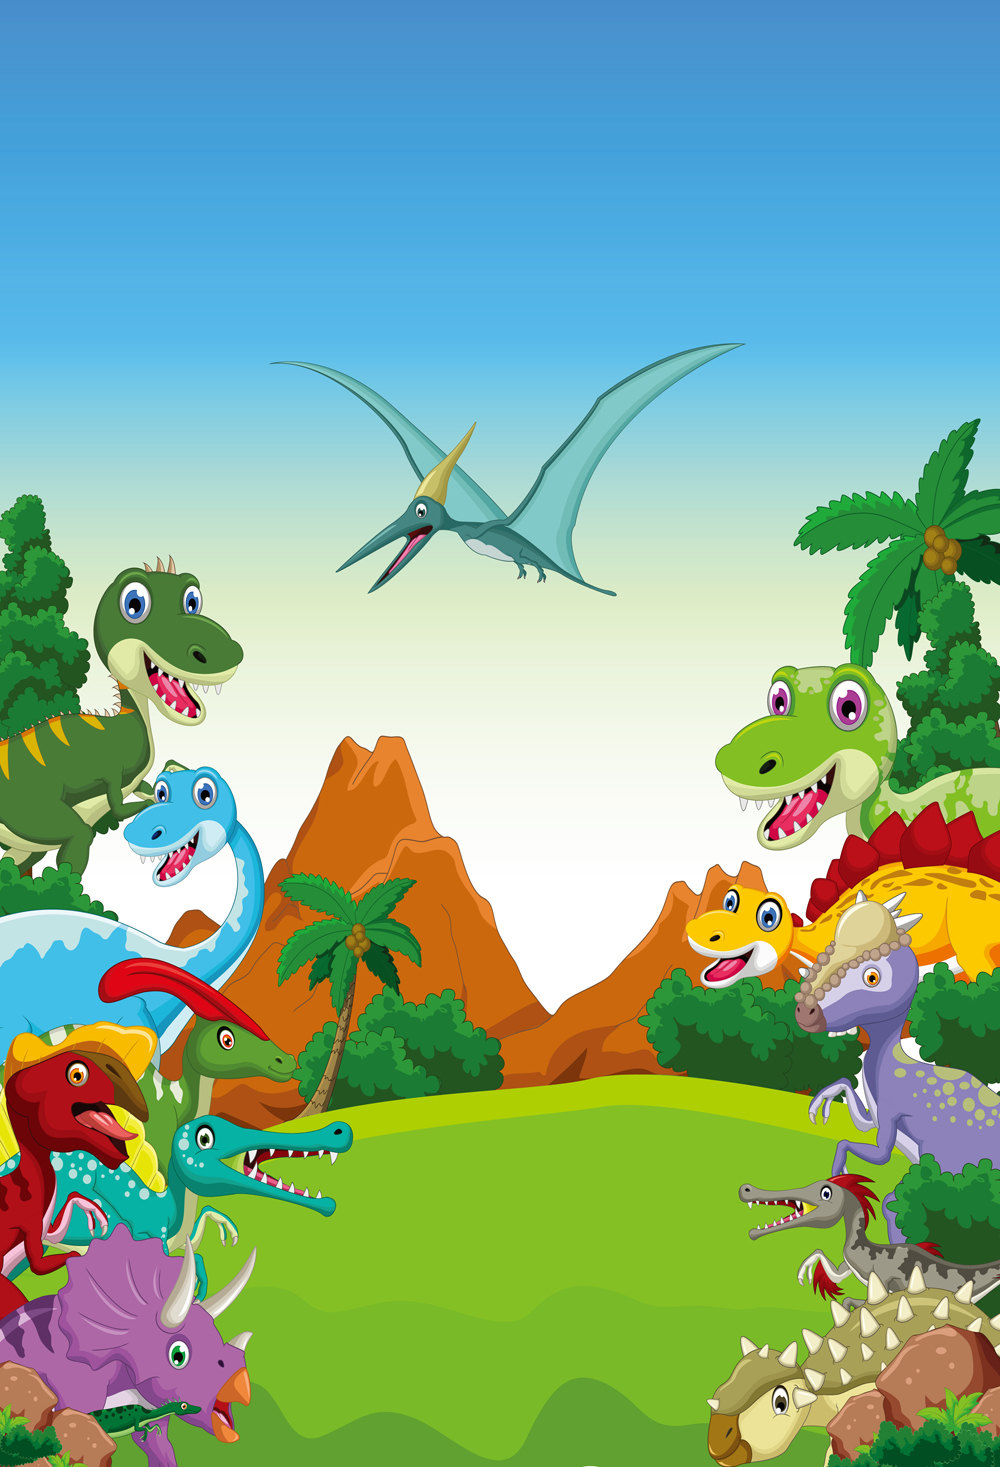 Dinosaur backdrop child background cartoon dino forest photocall baby cute photography customized size digital printing xt 6717 in background from consumer